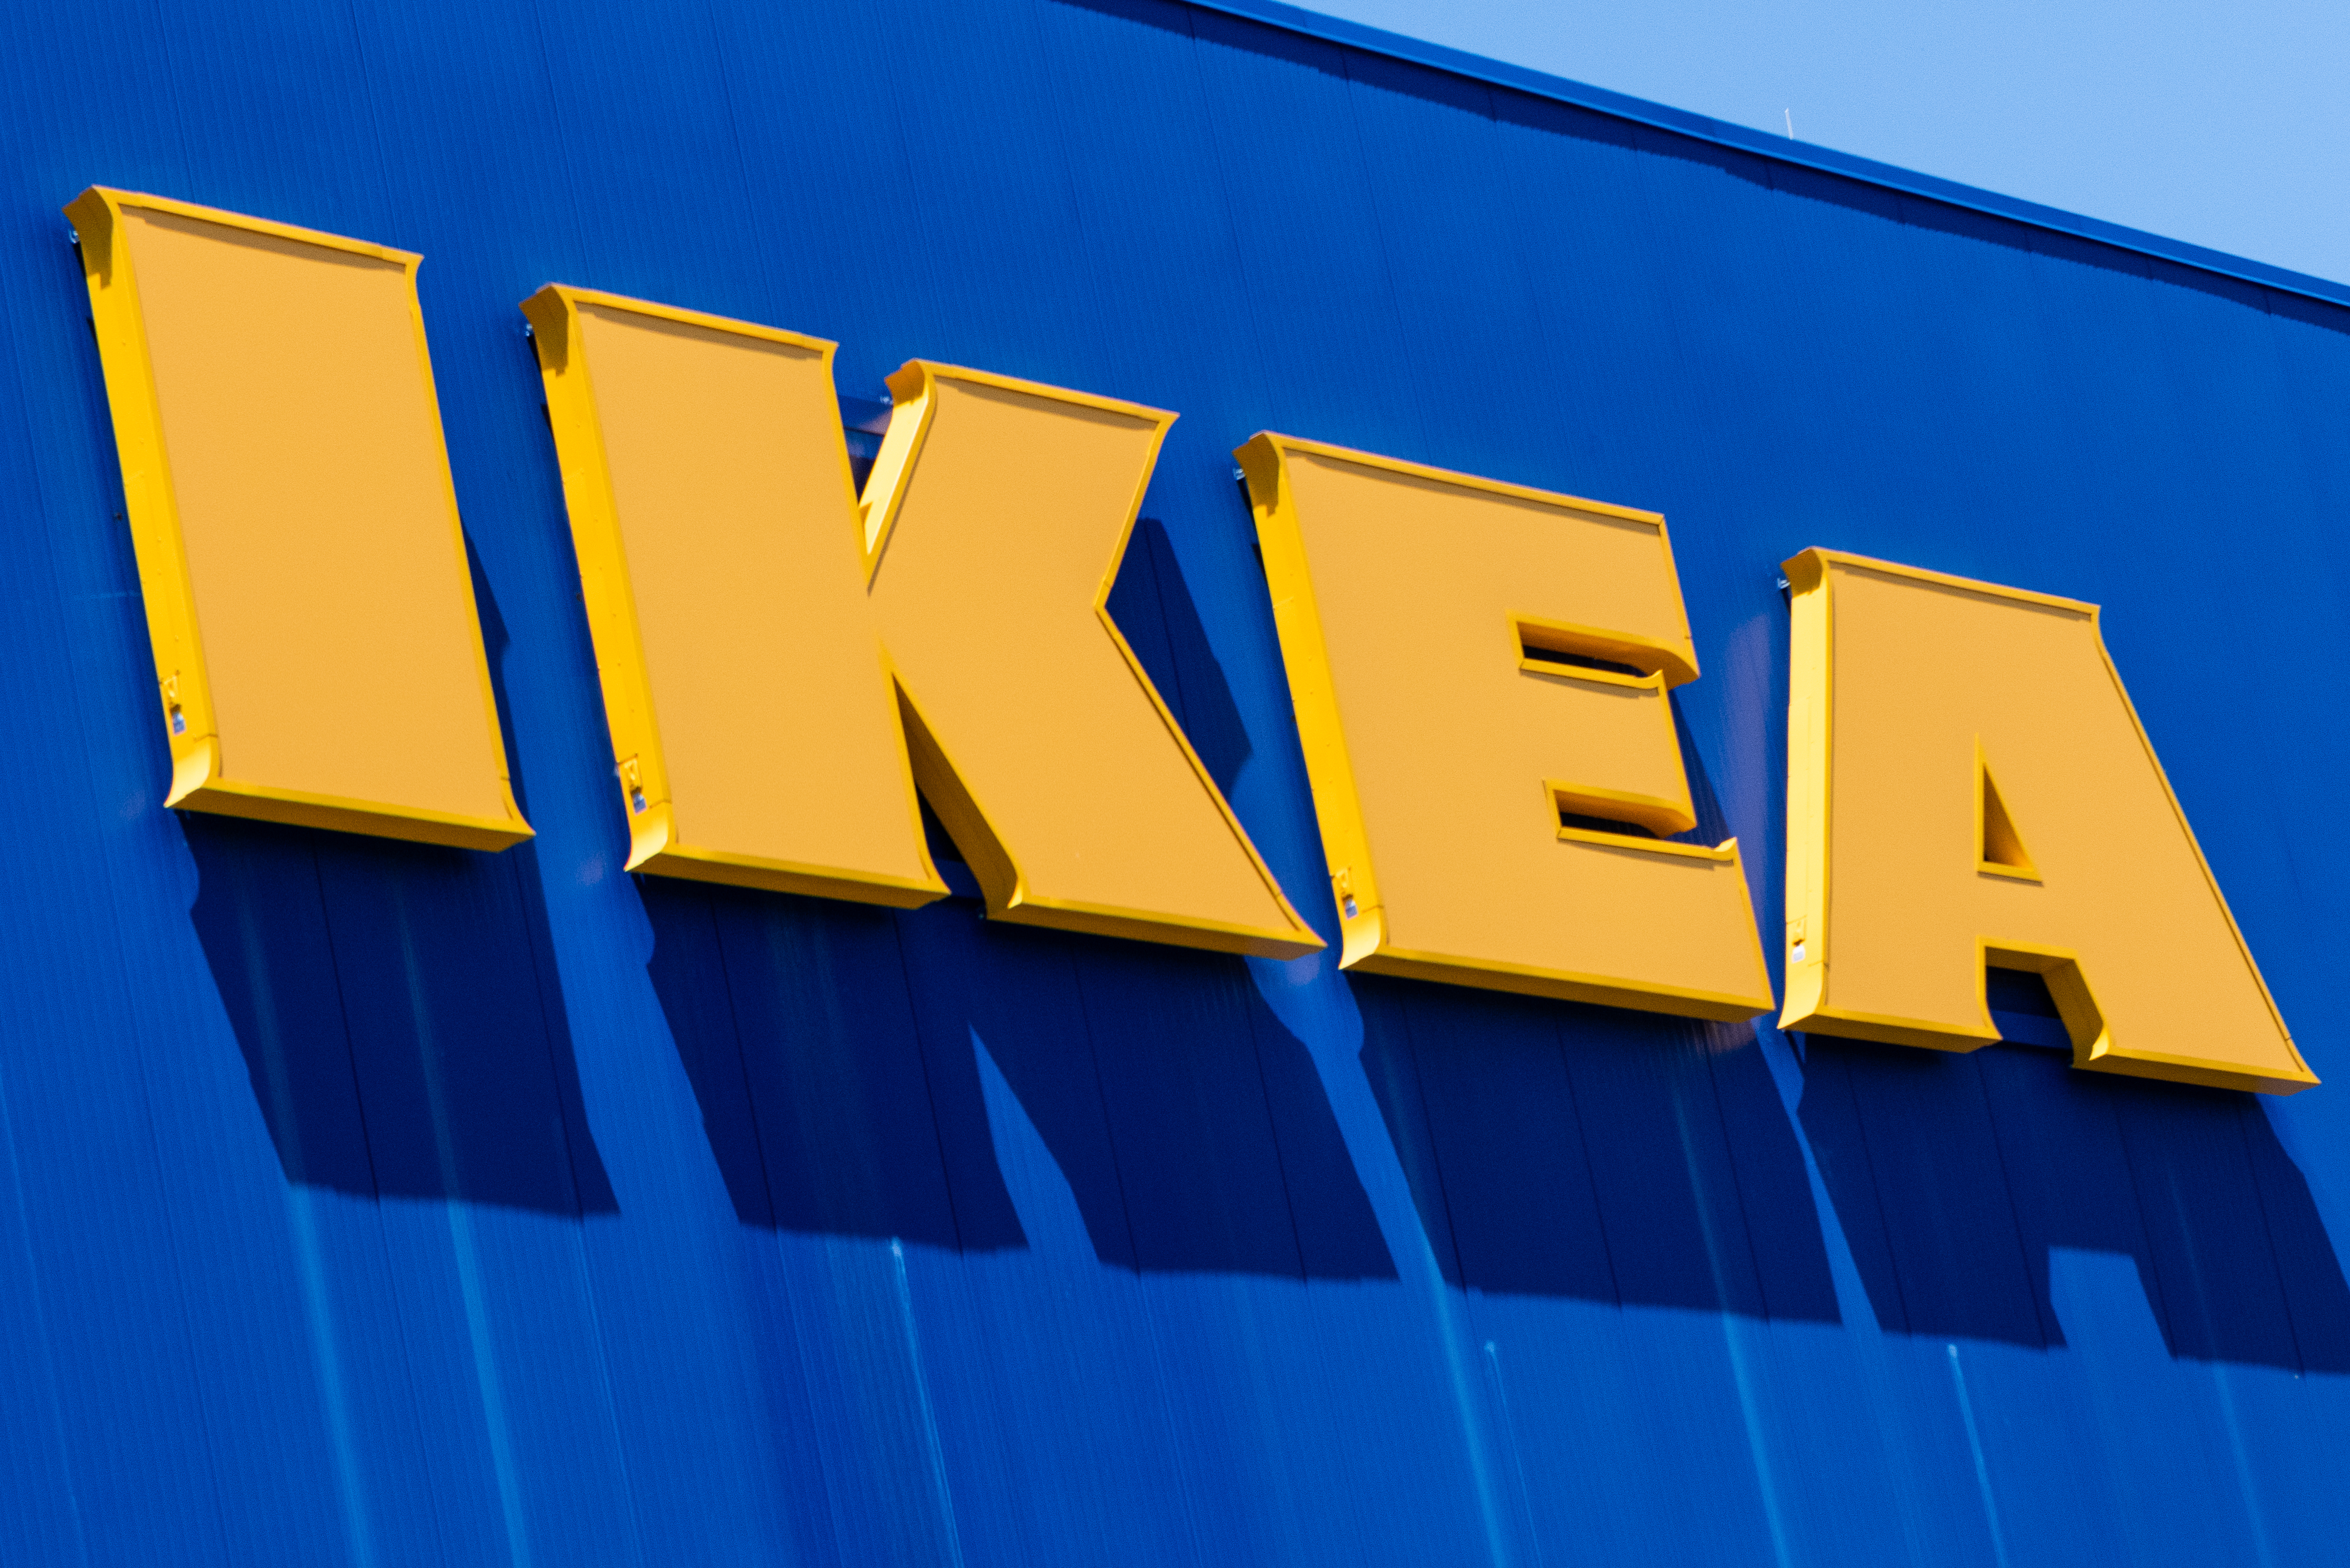 An IKEA store in New Jersey, USA © Getty / SOPA Images / contributor